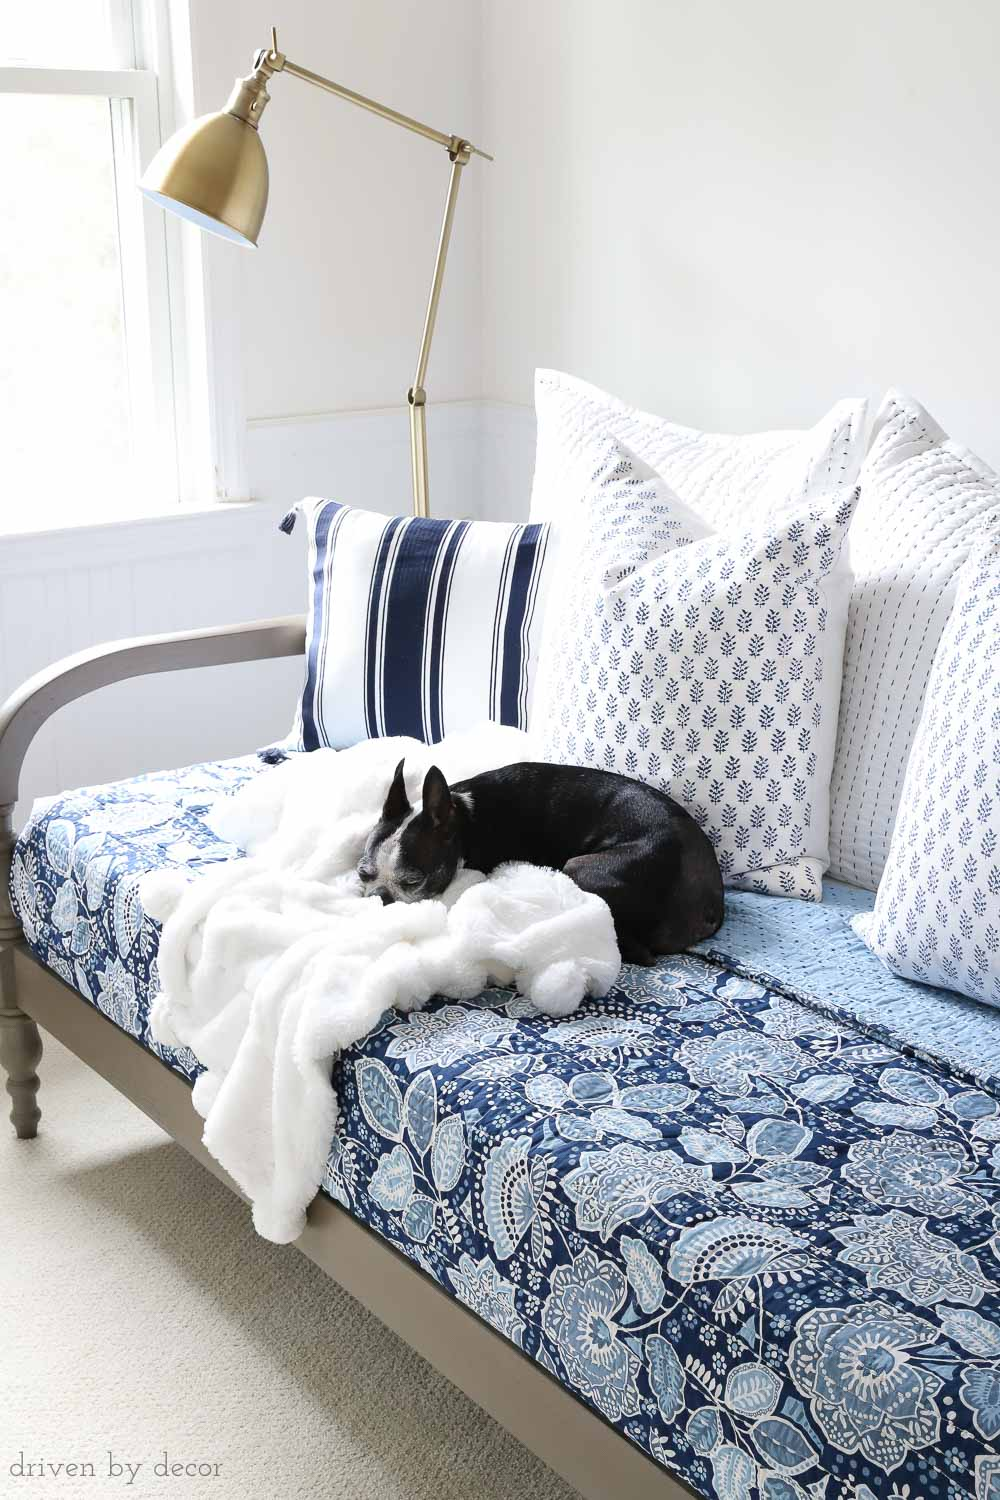 Great tips on where to start when decorating your bedroom. Love the combination of this colorful Vera Bradley bedding with the warm wood daybed and brass floor lamp!